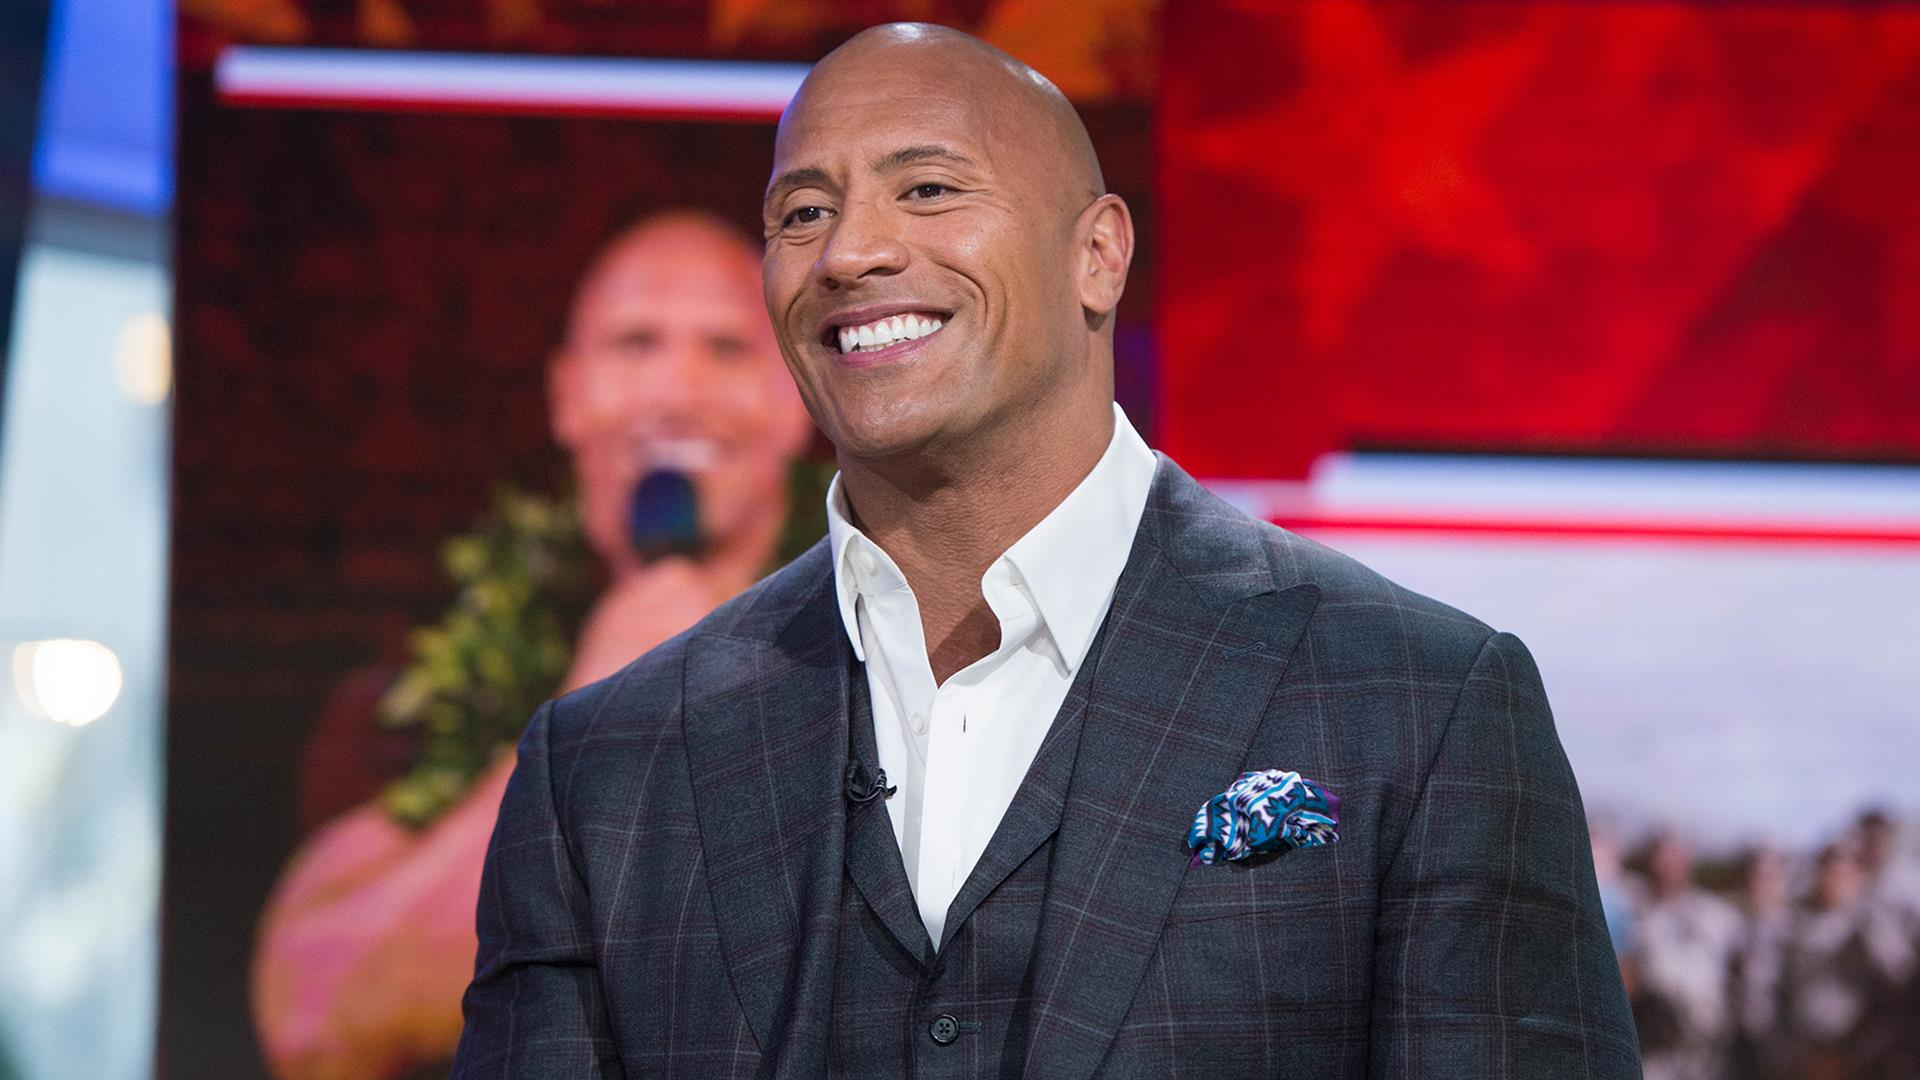 Dwayne Johnson talks about 'Baywatch' and his 'epic' tribute to troops